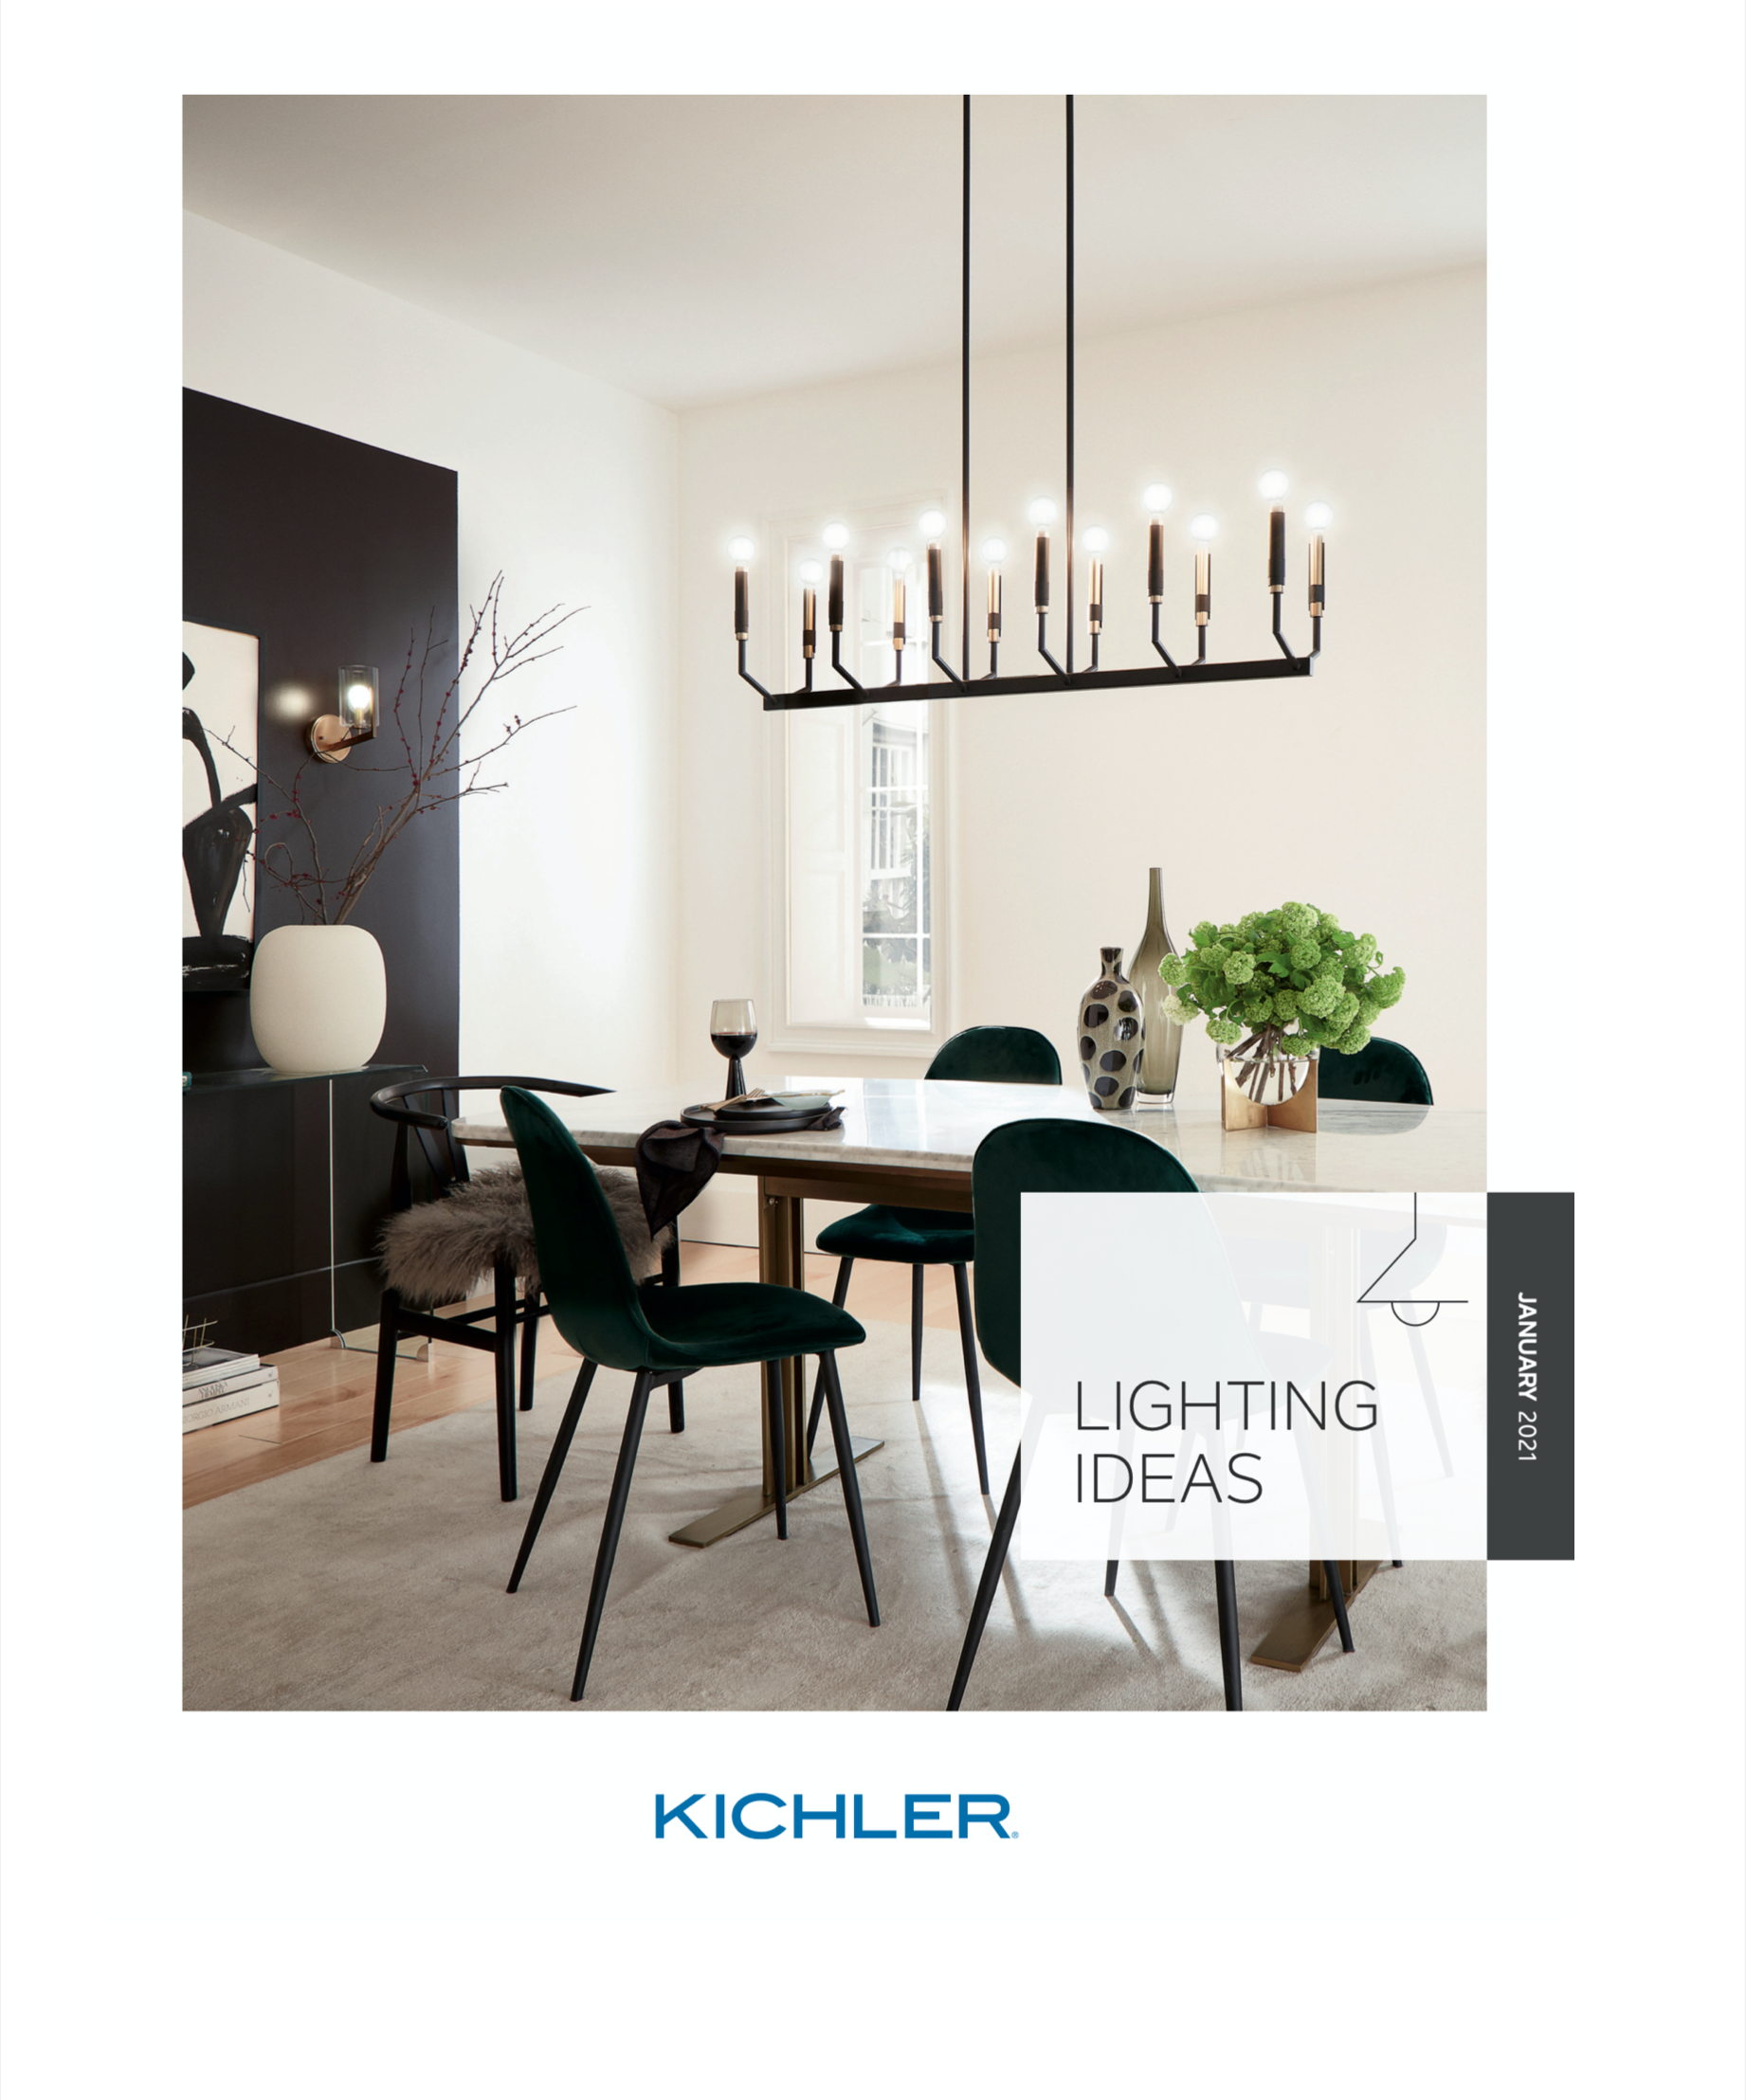 EZS_KICHLER Lighting Ideas 2021